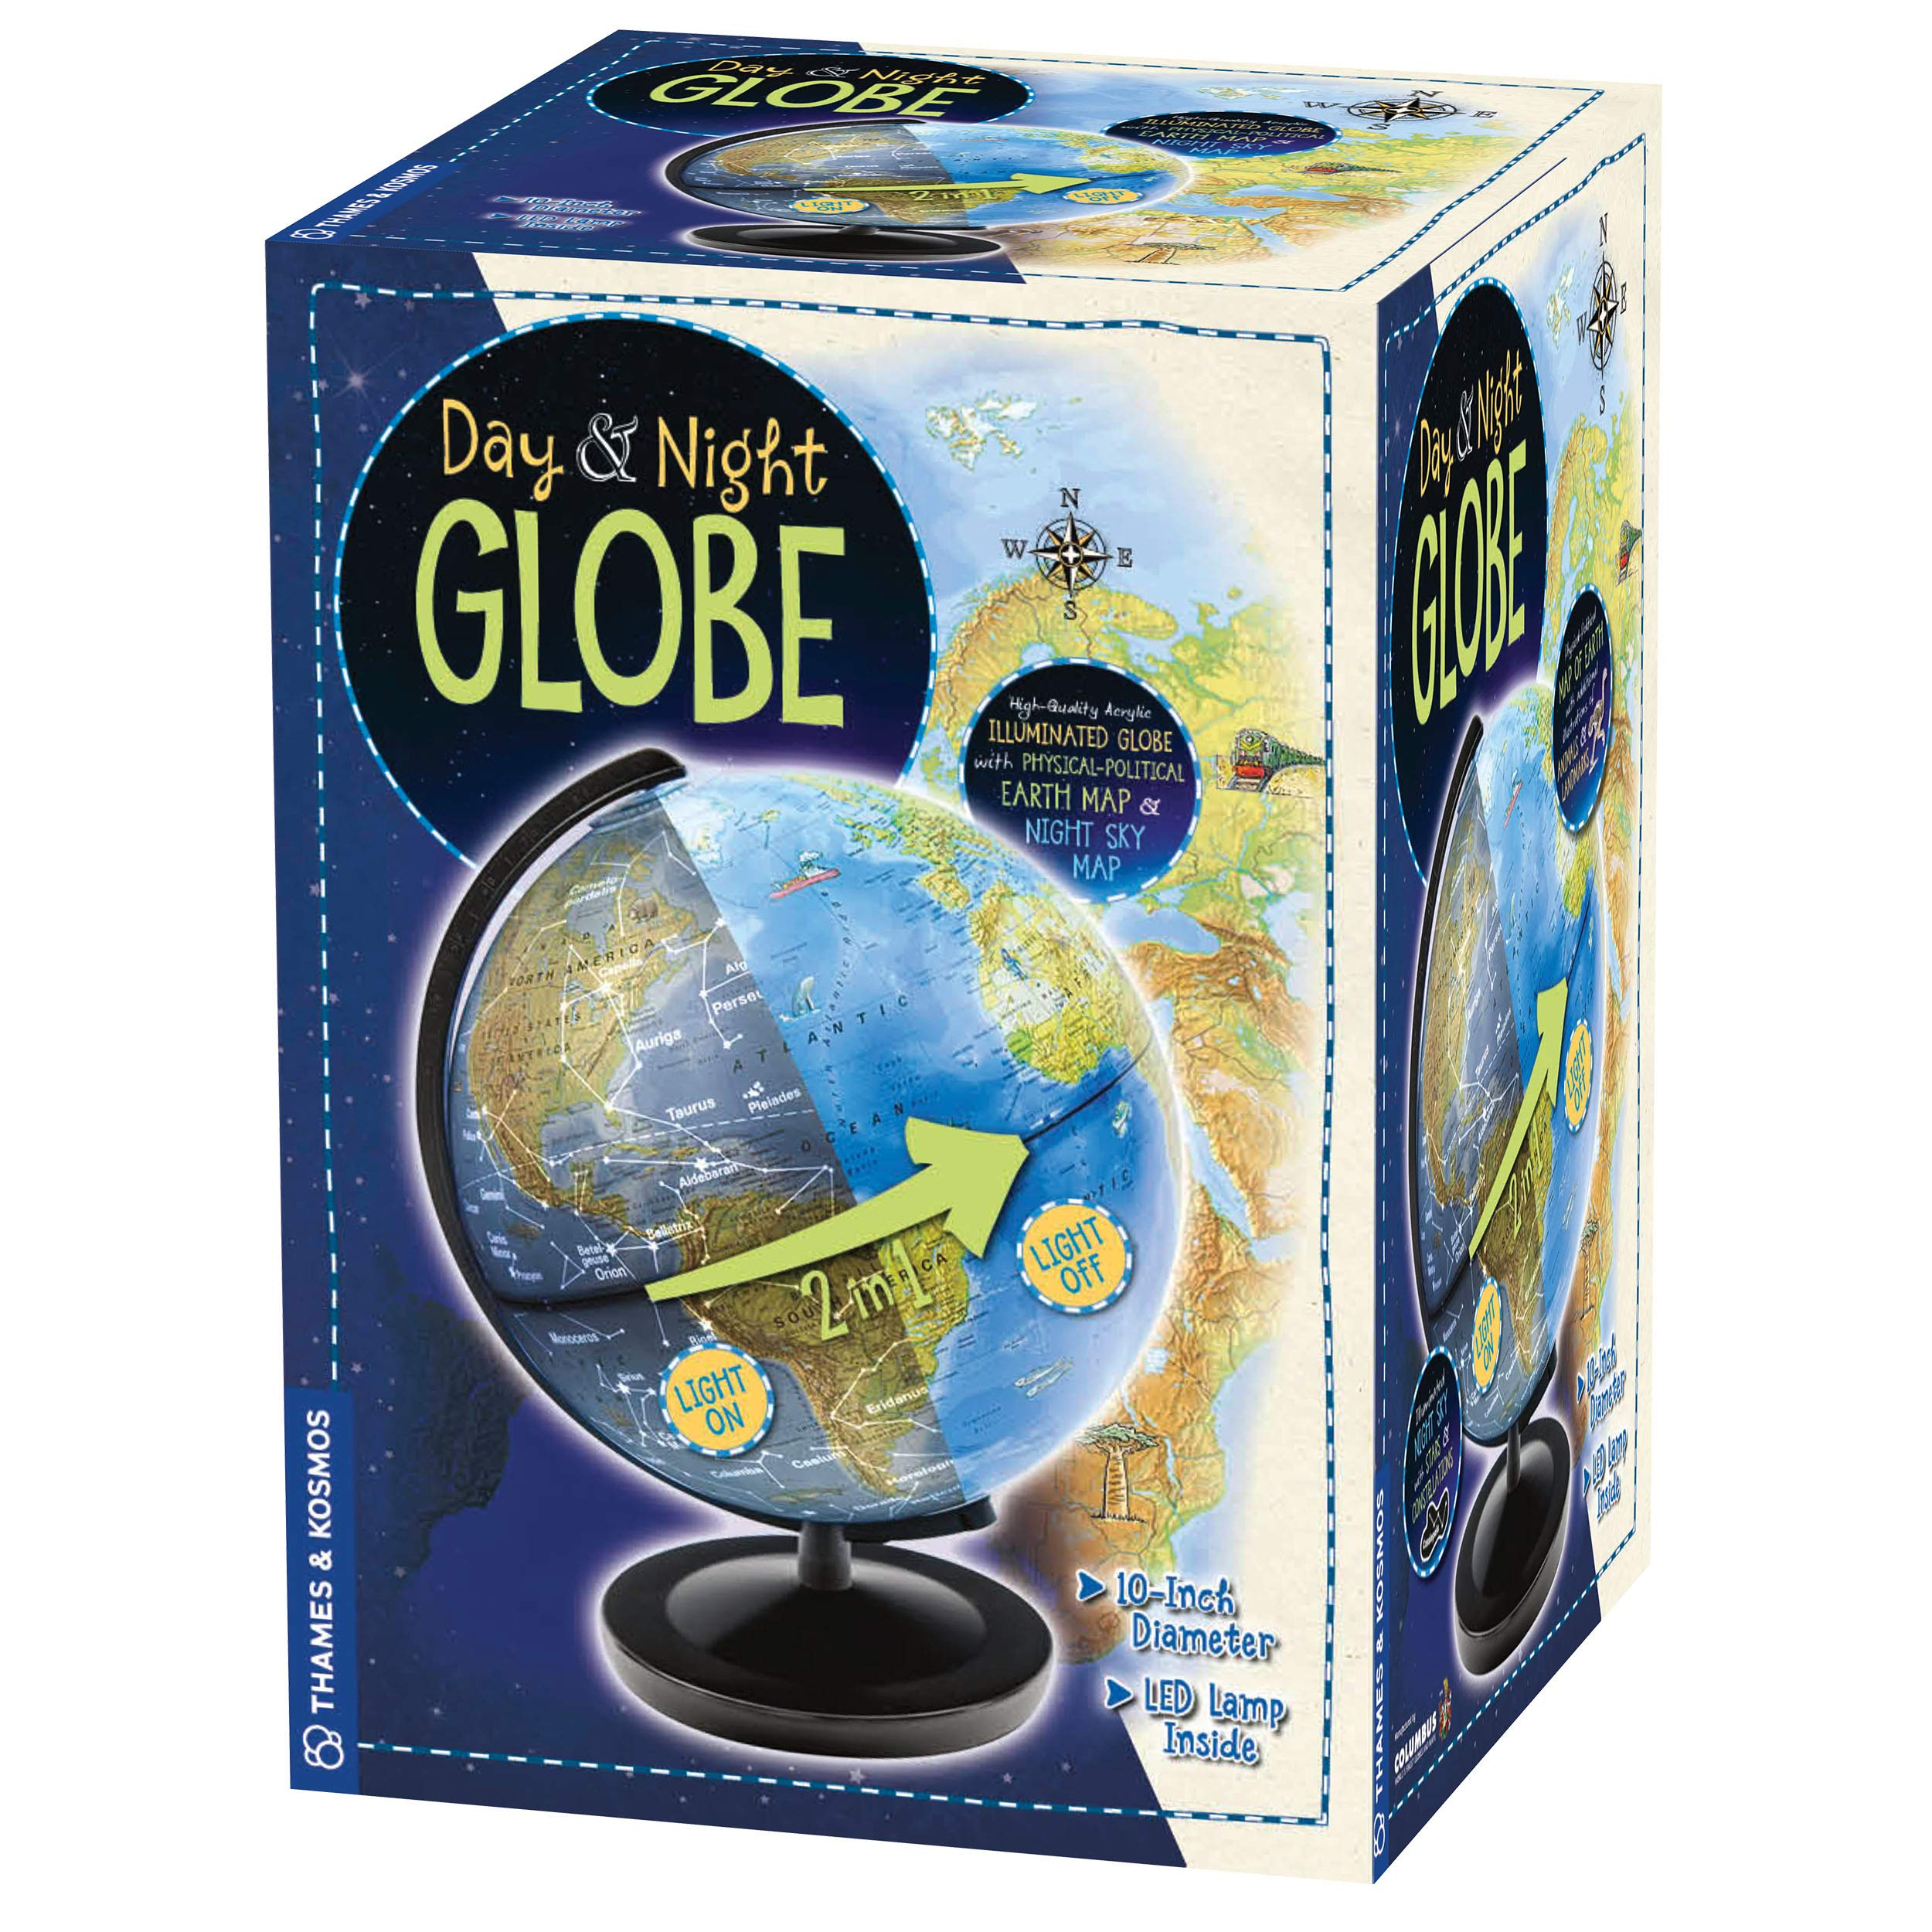 Thames & Kosmos Day & Night Globe - Handcrafted, Acrylic - Made in Germany by Columbus Globes - 10 inch, Illuminated LED Light-up with Night Sky Constellation Map